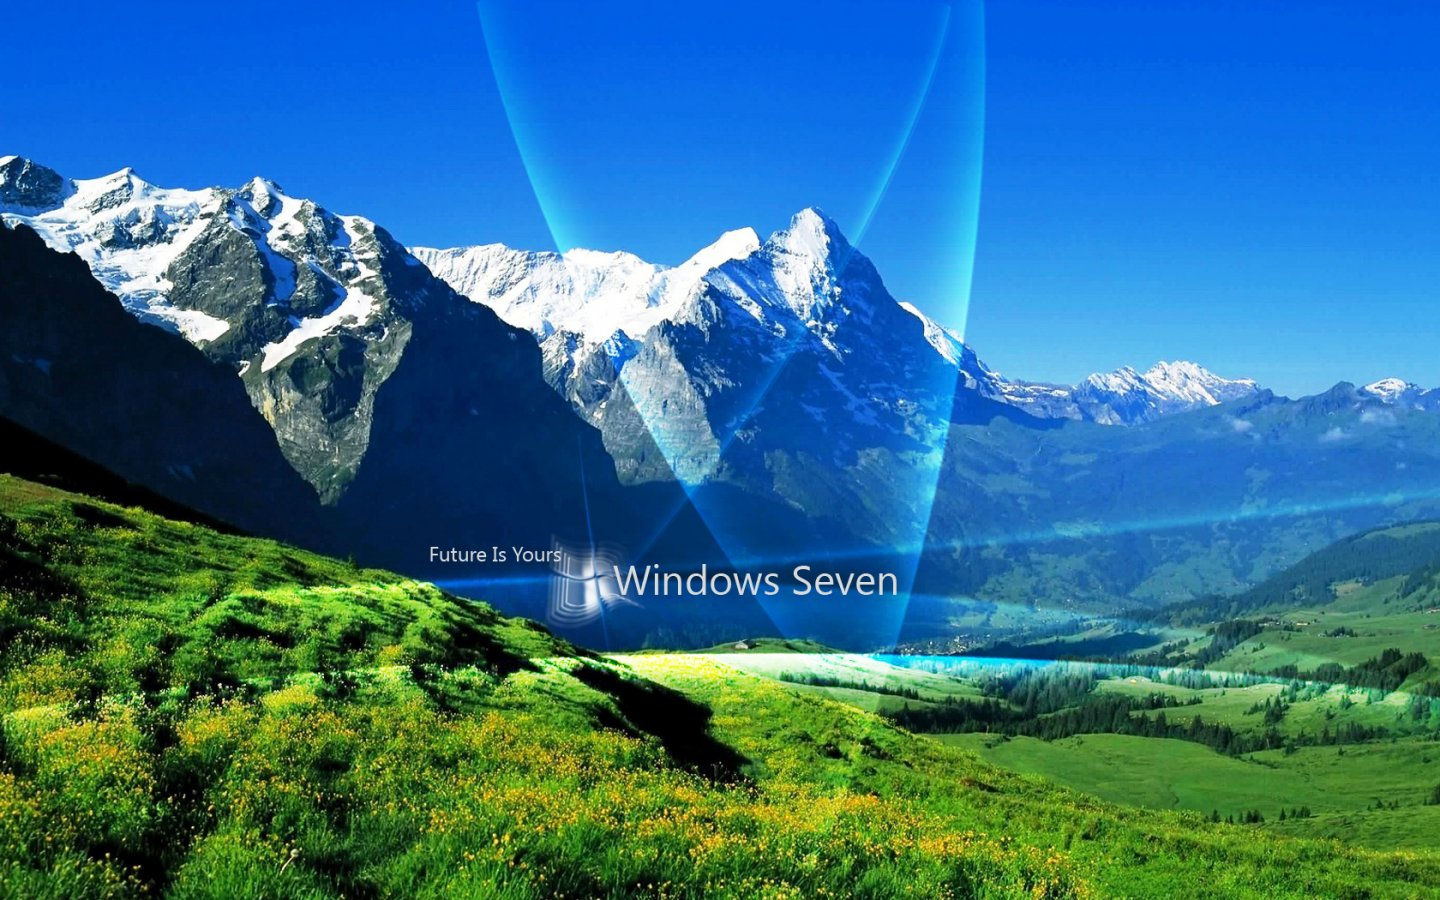 Windows 7 nature wallpapers windows 7 nature stock photos - Background pictures of nature for desktop ...